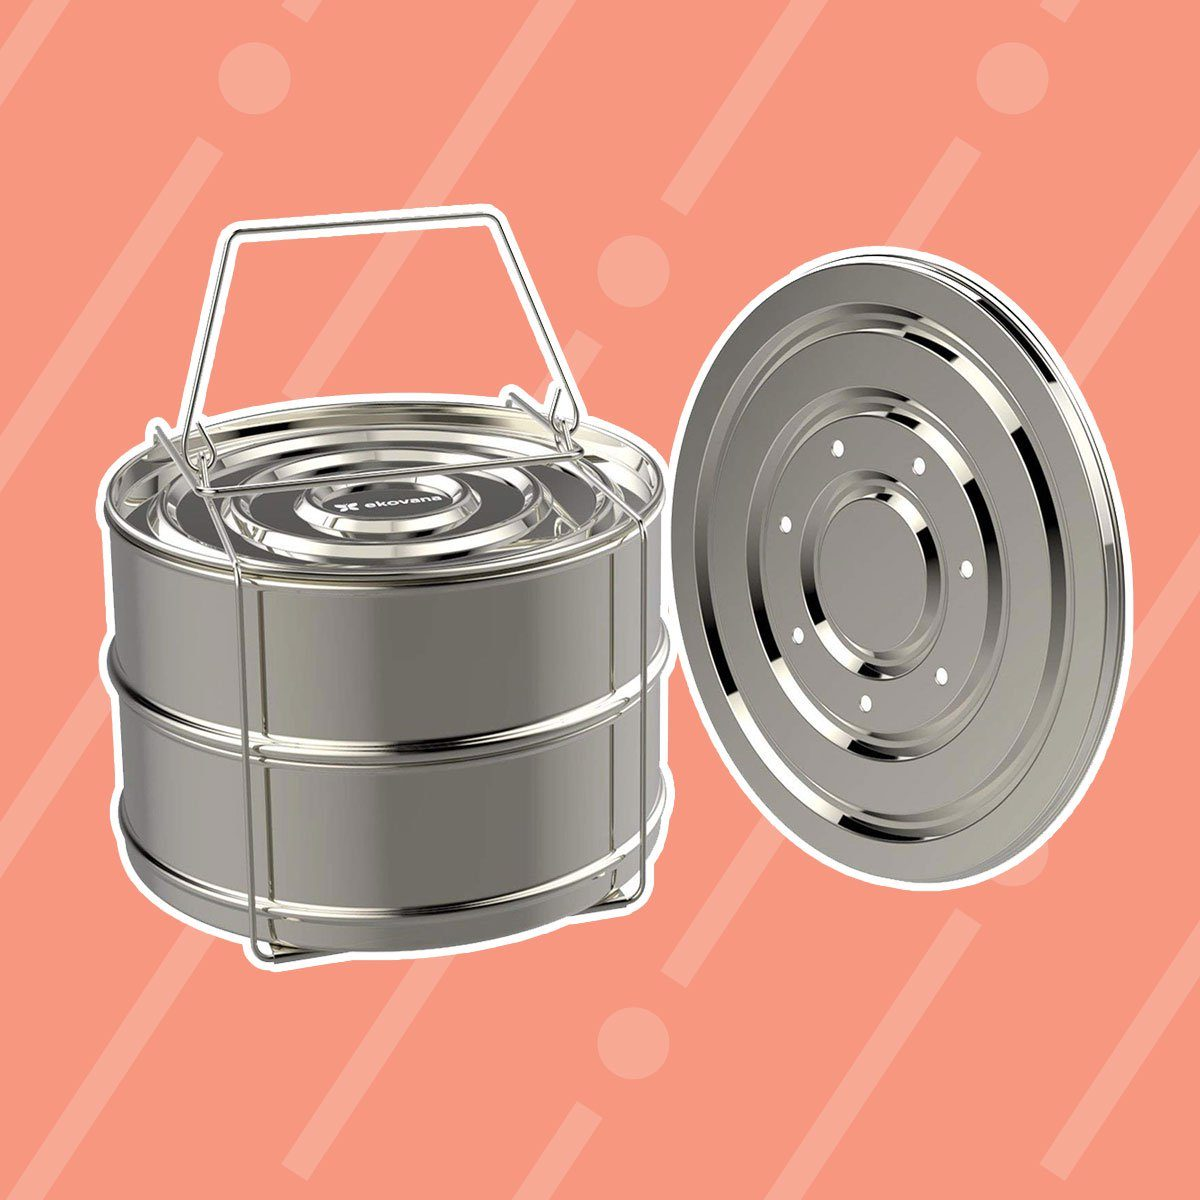 ekovana Stackable Stainless Steel Pressure Cooker Steamer Insert Pans